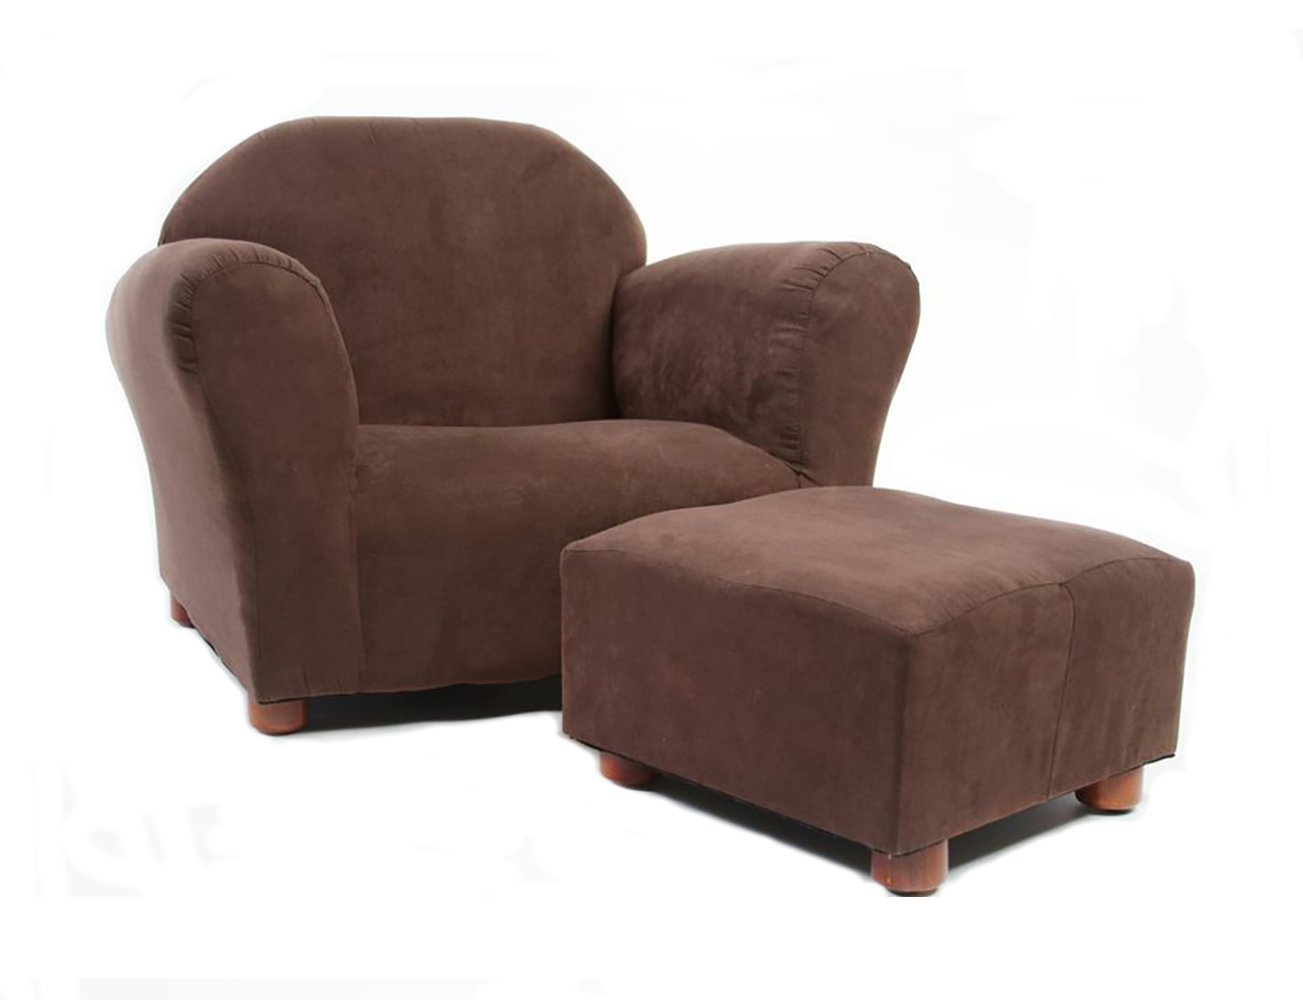 Wonderful Amazon.com: KEET Roundy Child Size Chair With Microsuede Ottoman, Brown,  Ages 2 5 Years: Baby